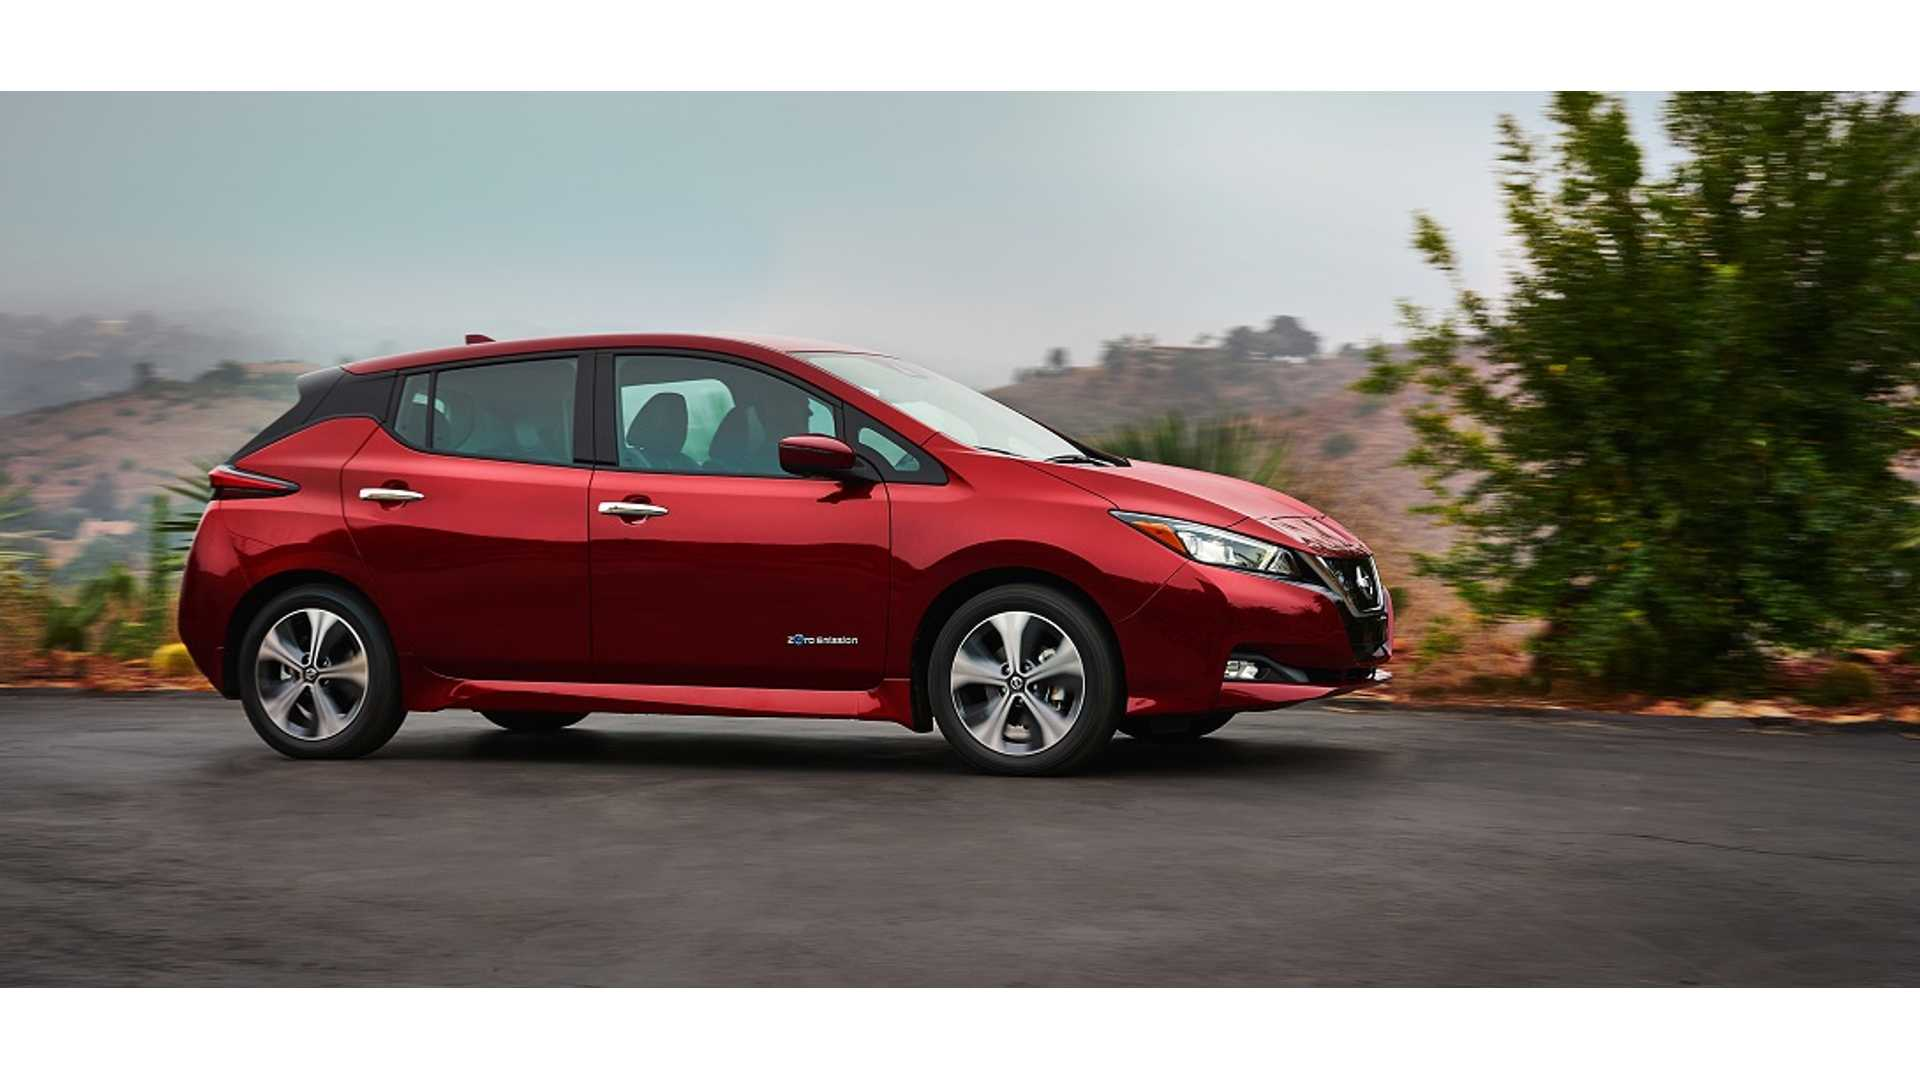 Nissan Leaf Based Electric Suv To Debut Next Month Sedan Follow